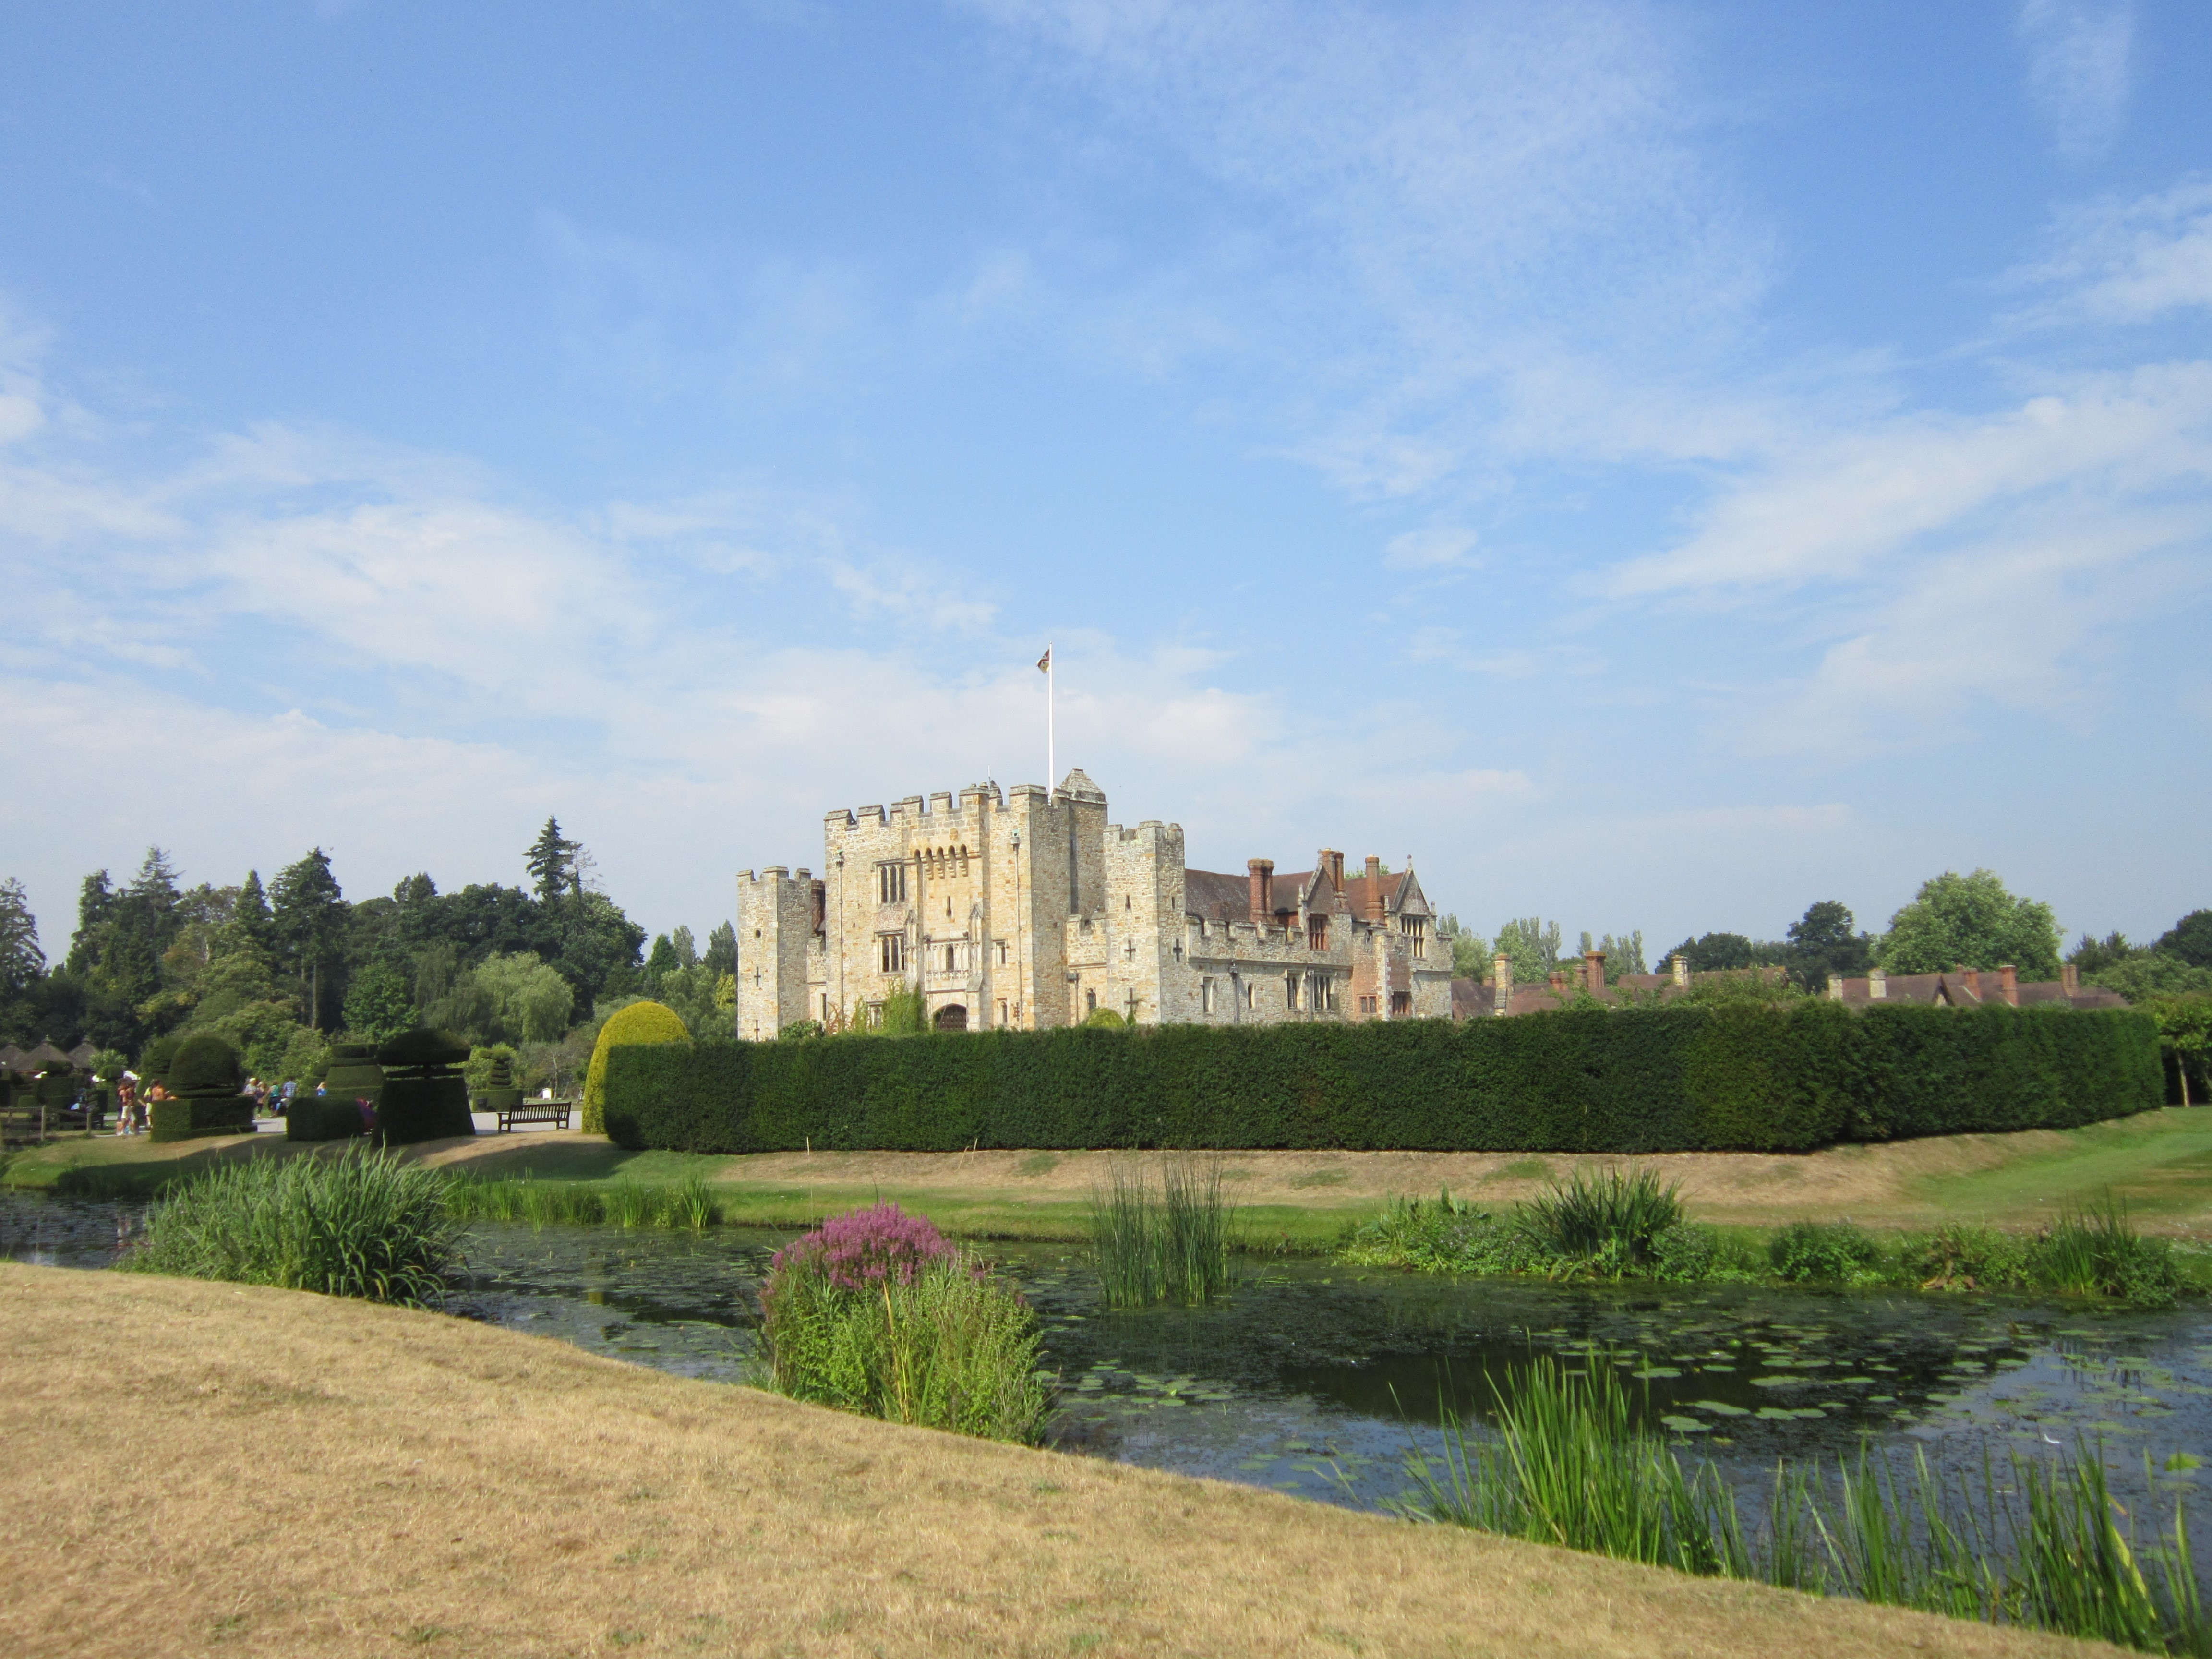 The moat at Hever Castle Image